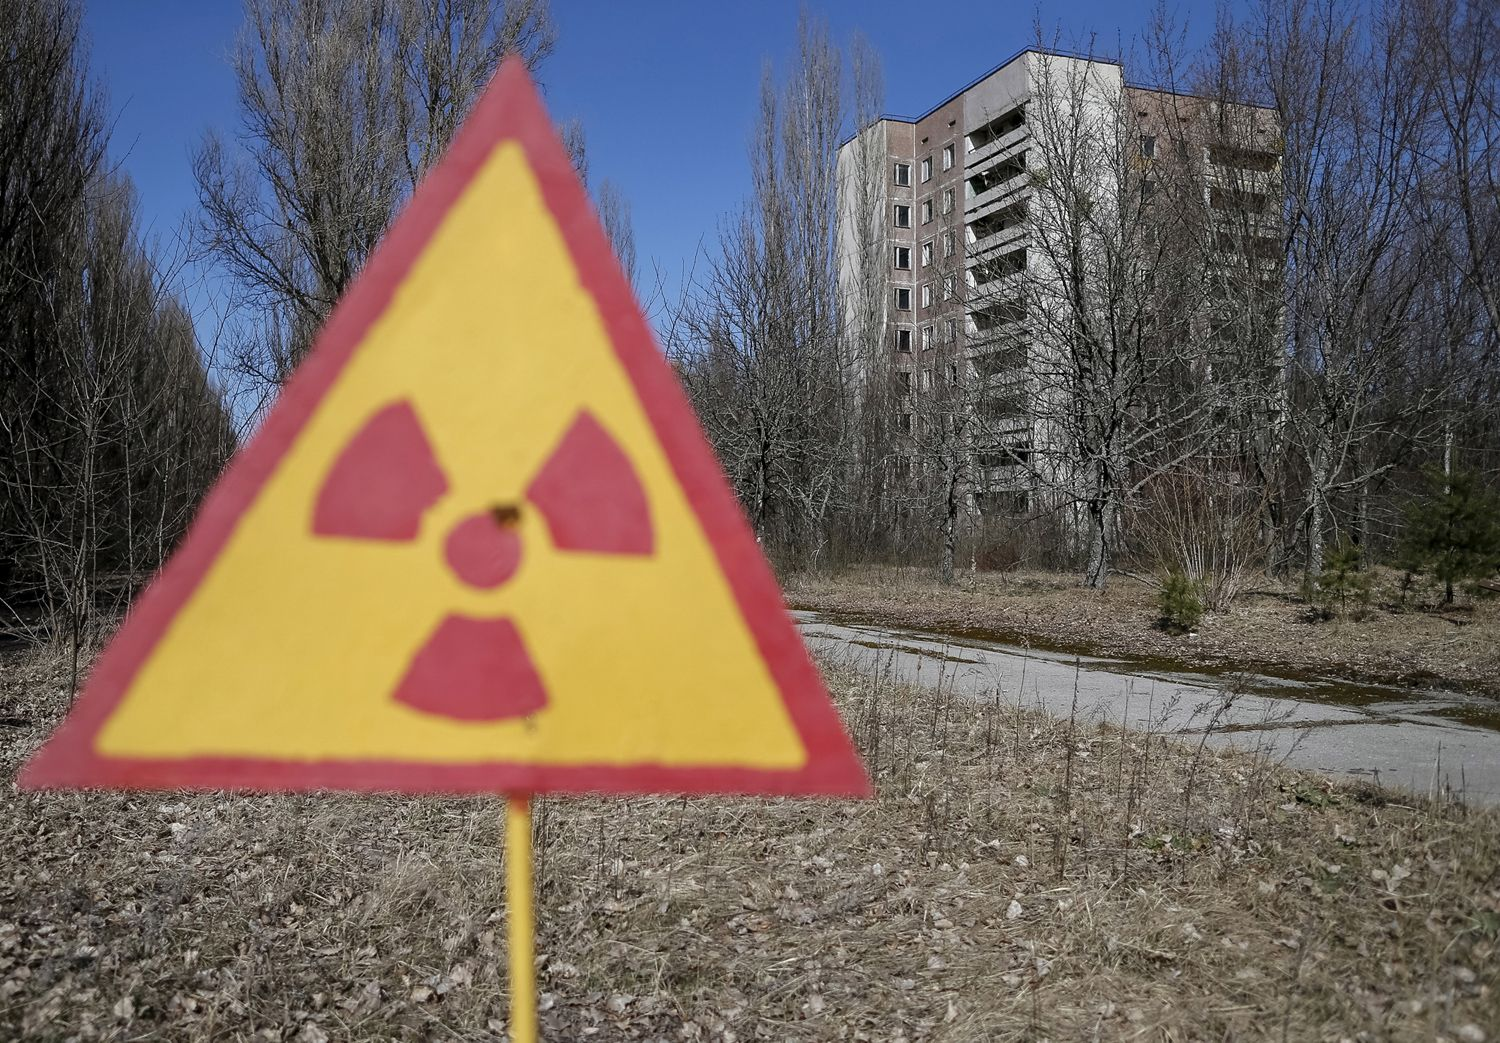 A view of the abandoned city of Pripyat near the Chernobyl Nuclear Power Plant in Ukraine on March 28, 2016.